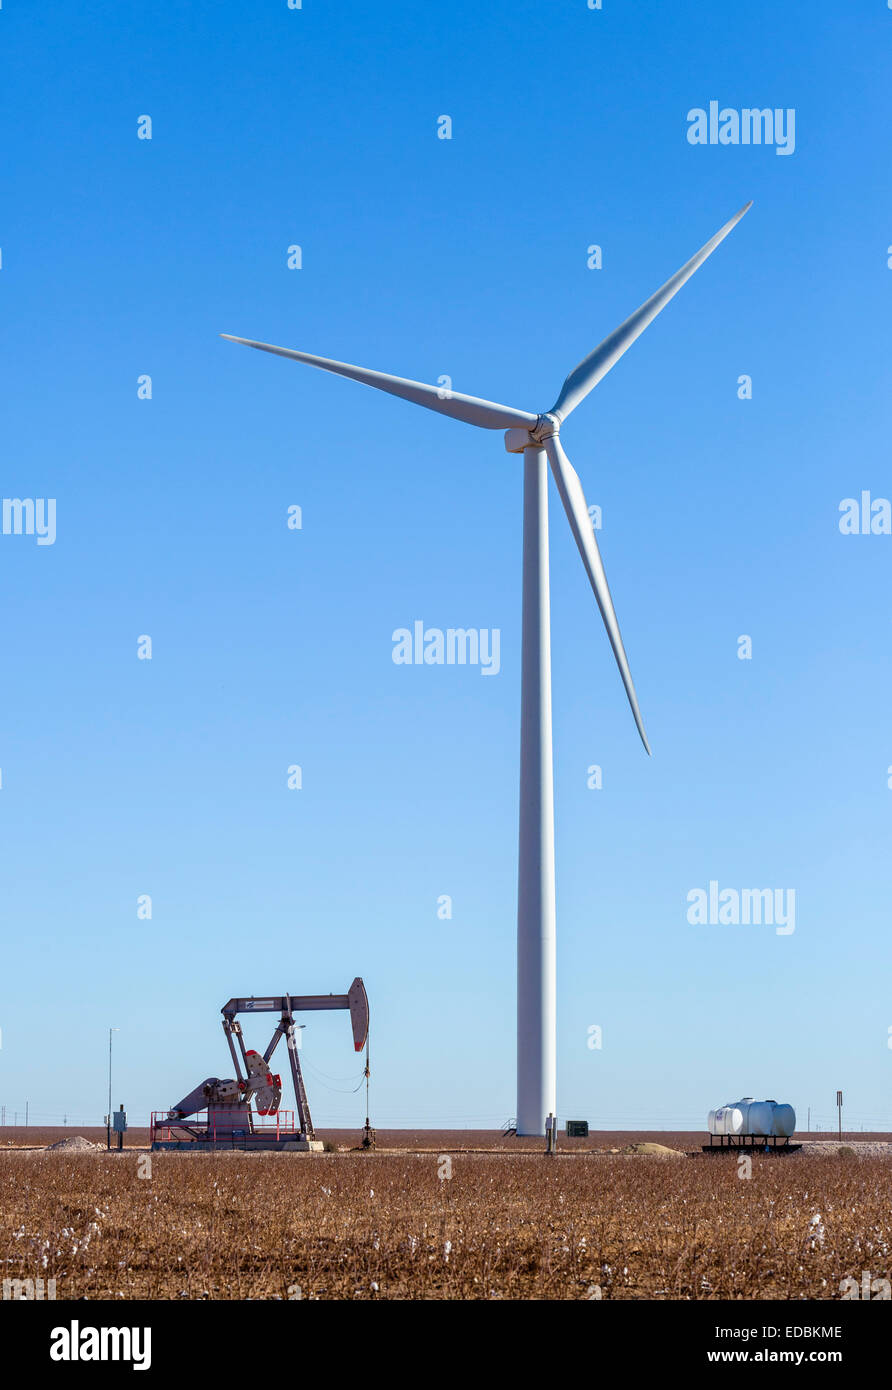 Oil well next to a wind turbine outside Midland, Texas, USA - Stock Image